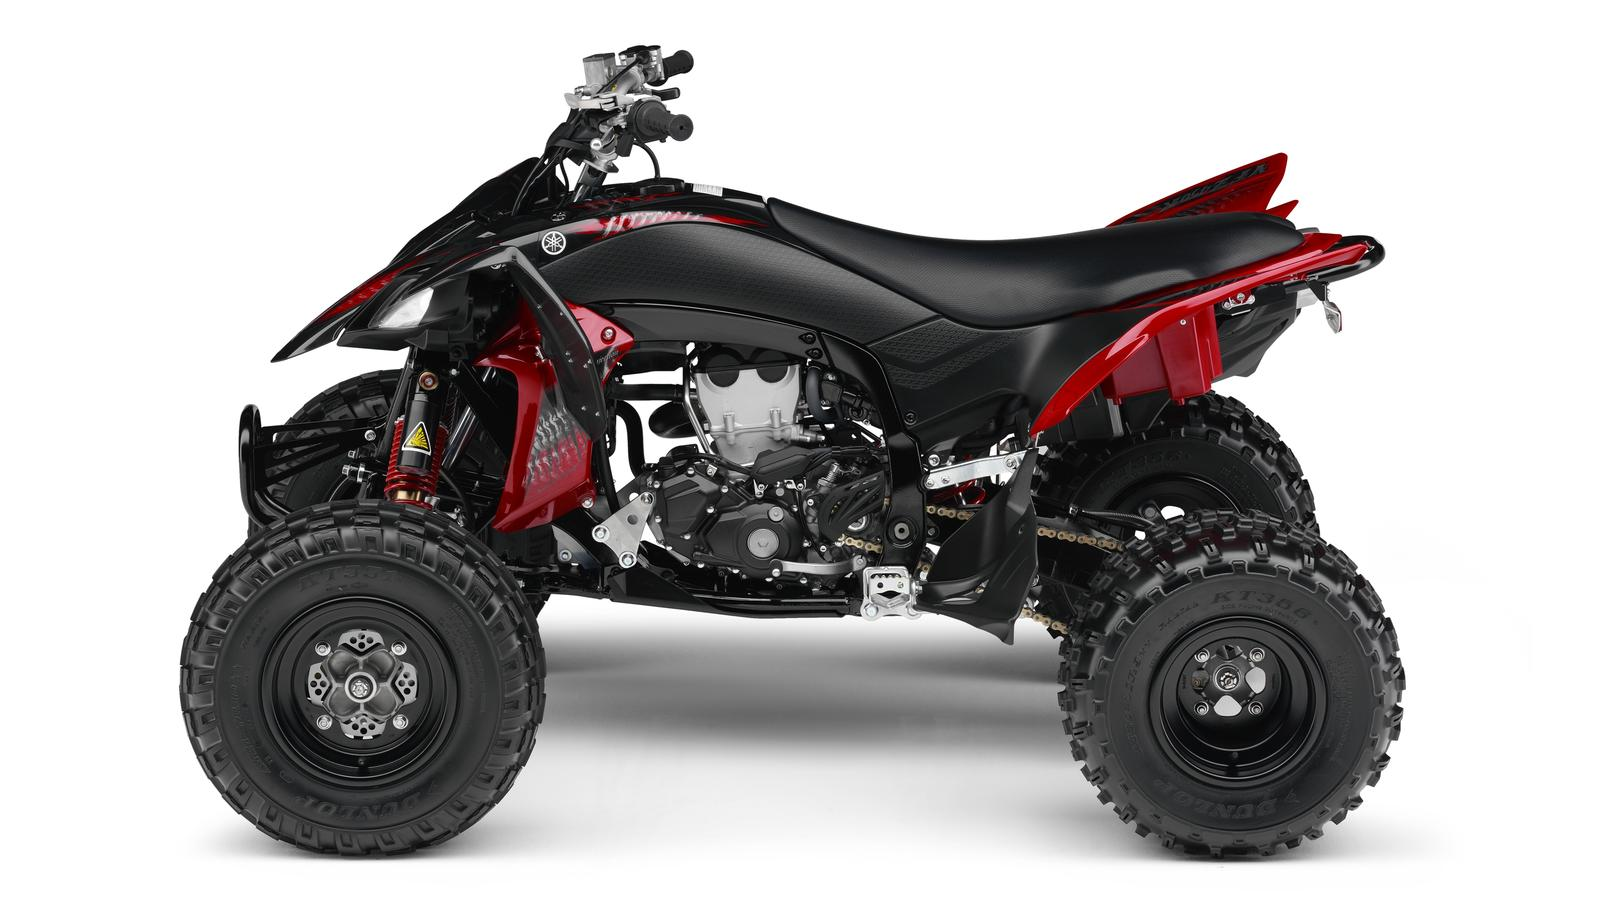 YAMAHA YFZ 450 R 2011 photo 3